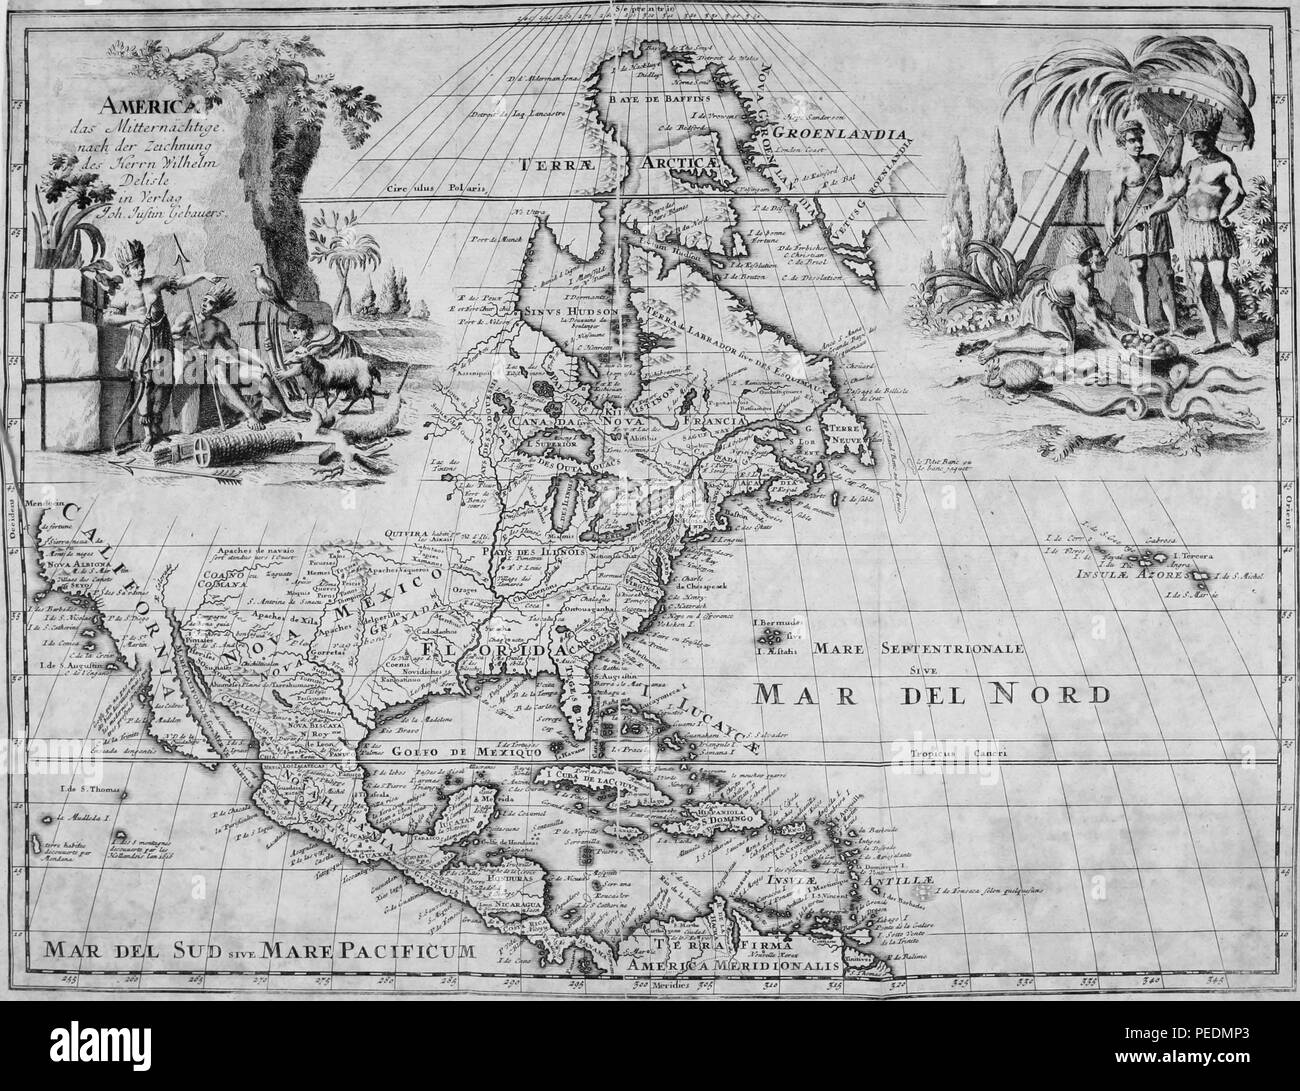 Black and white map of The Arctic, Greenland, North America, Central America, and the Caribbean islands, with place names, and illustrations at the upper left and right depicting two groups of indigenous peoples, 1825. Courtesy Internet Archive. () - Stock Image